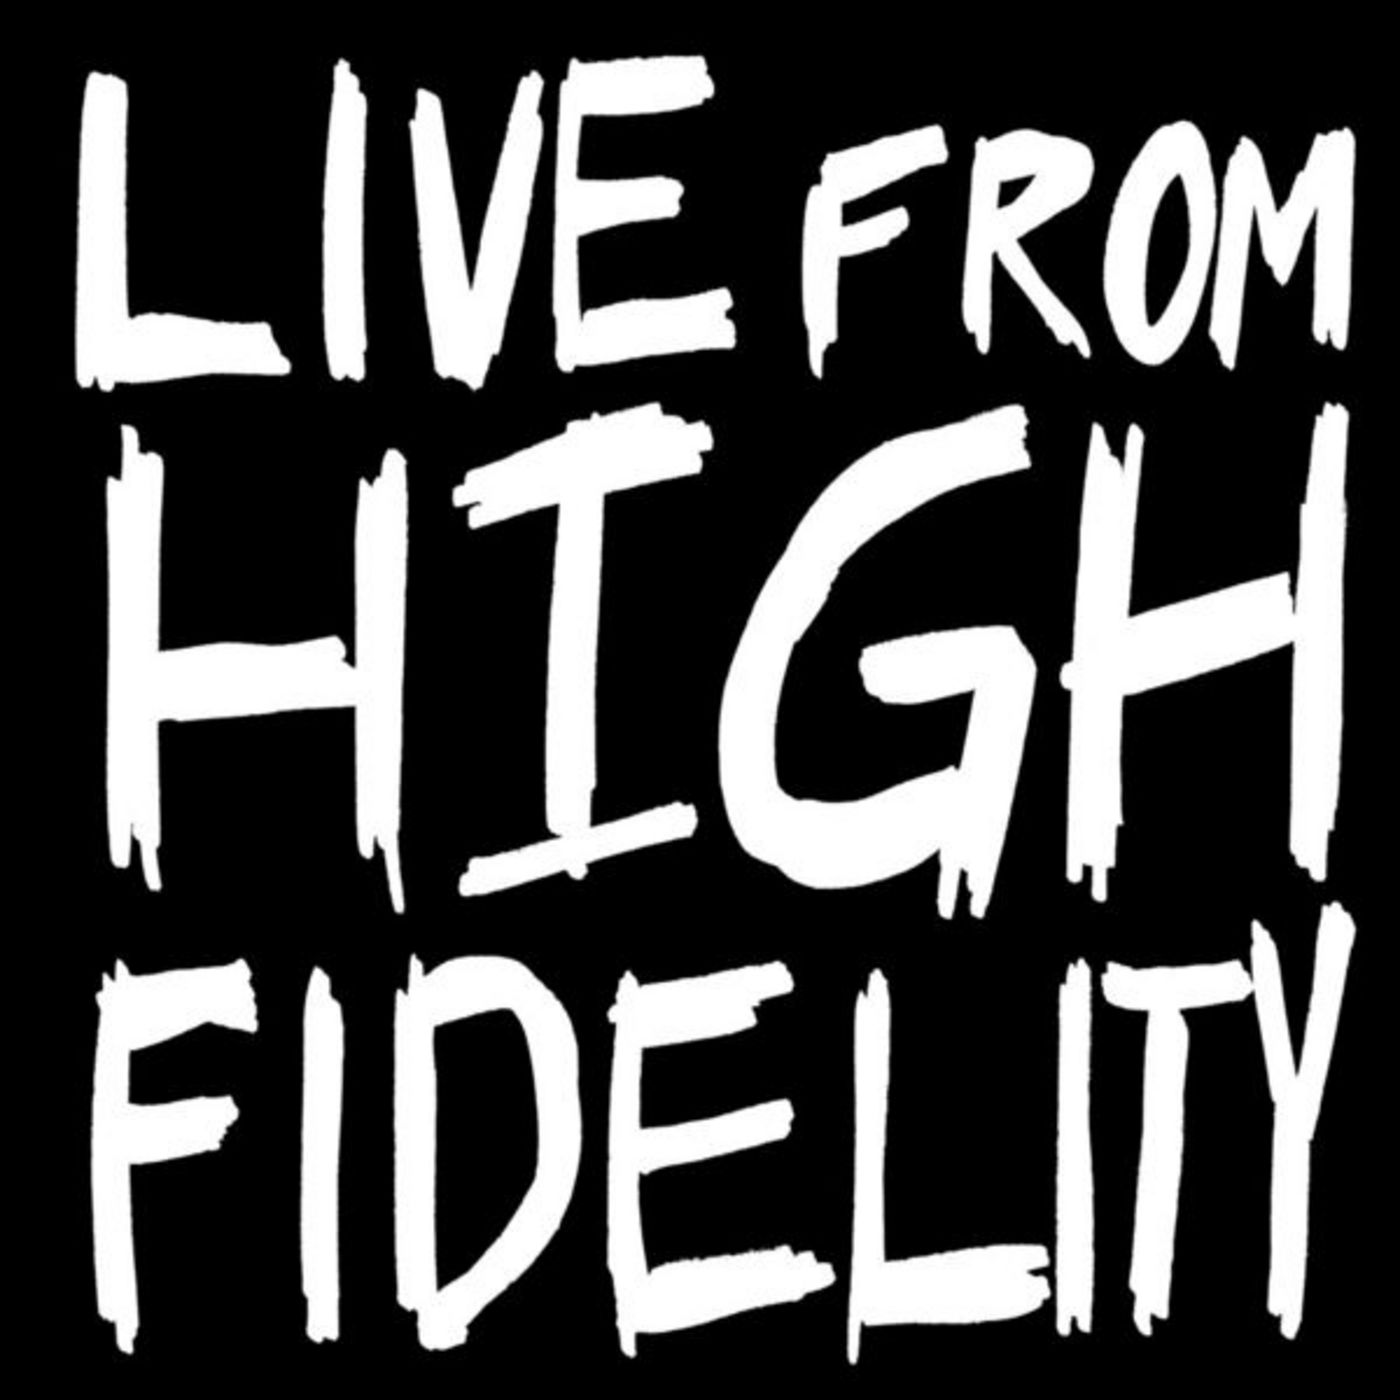 <![CDATA[Live from High Fidelity]]>